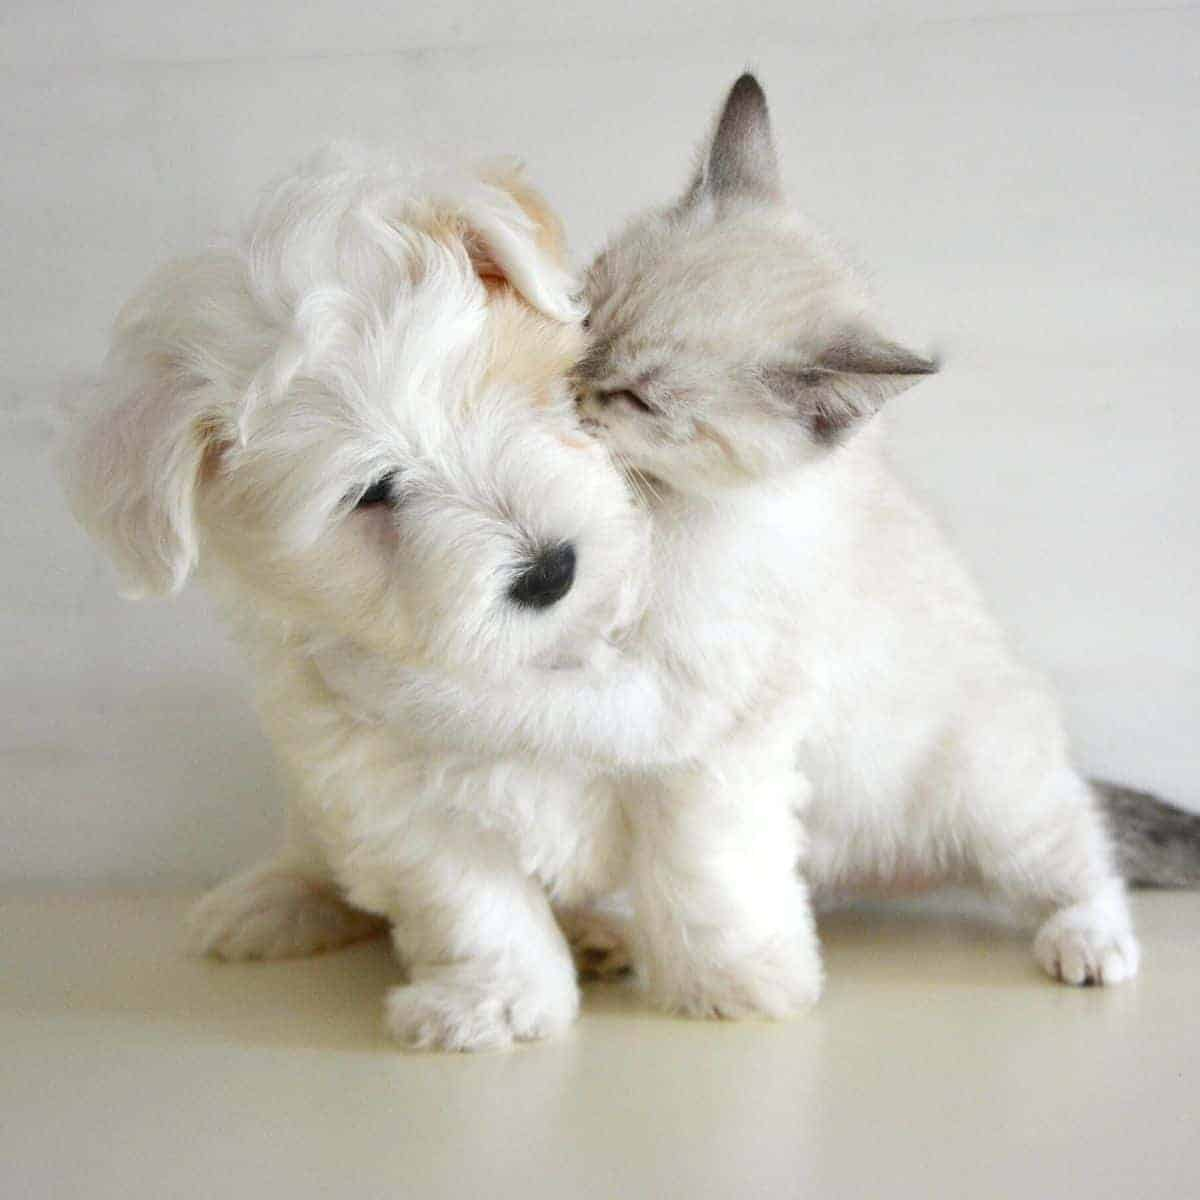 Cat hugging a dog.